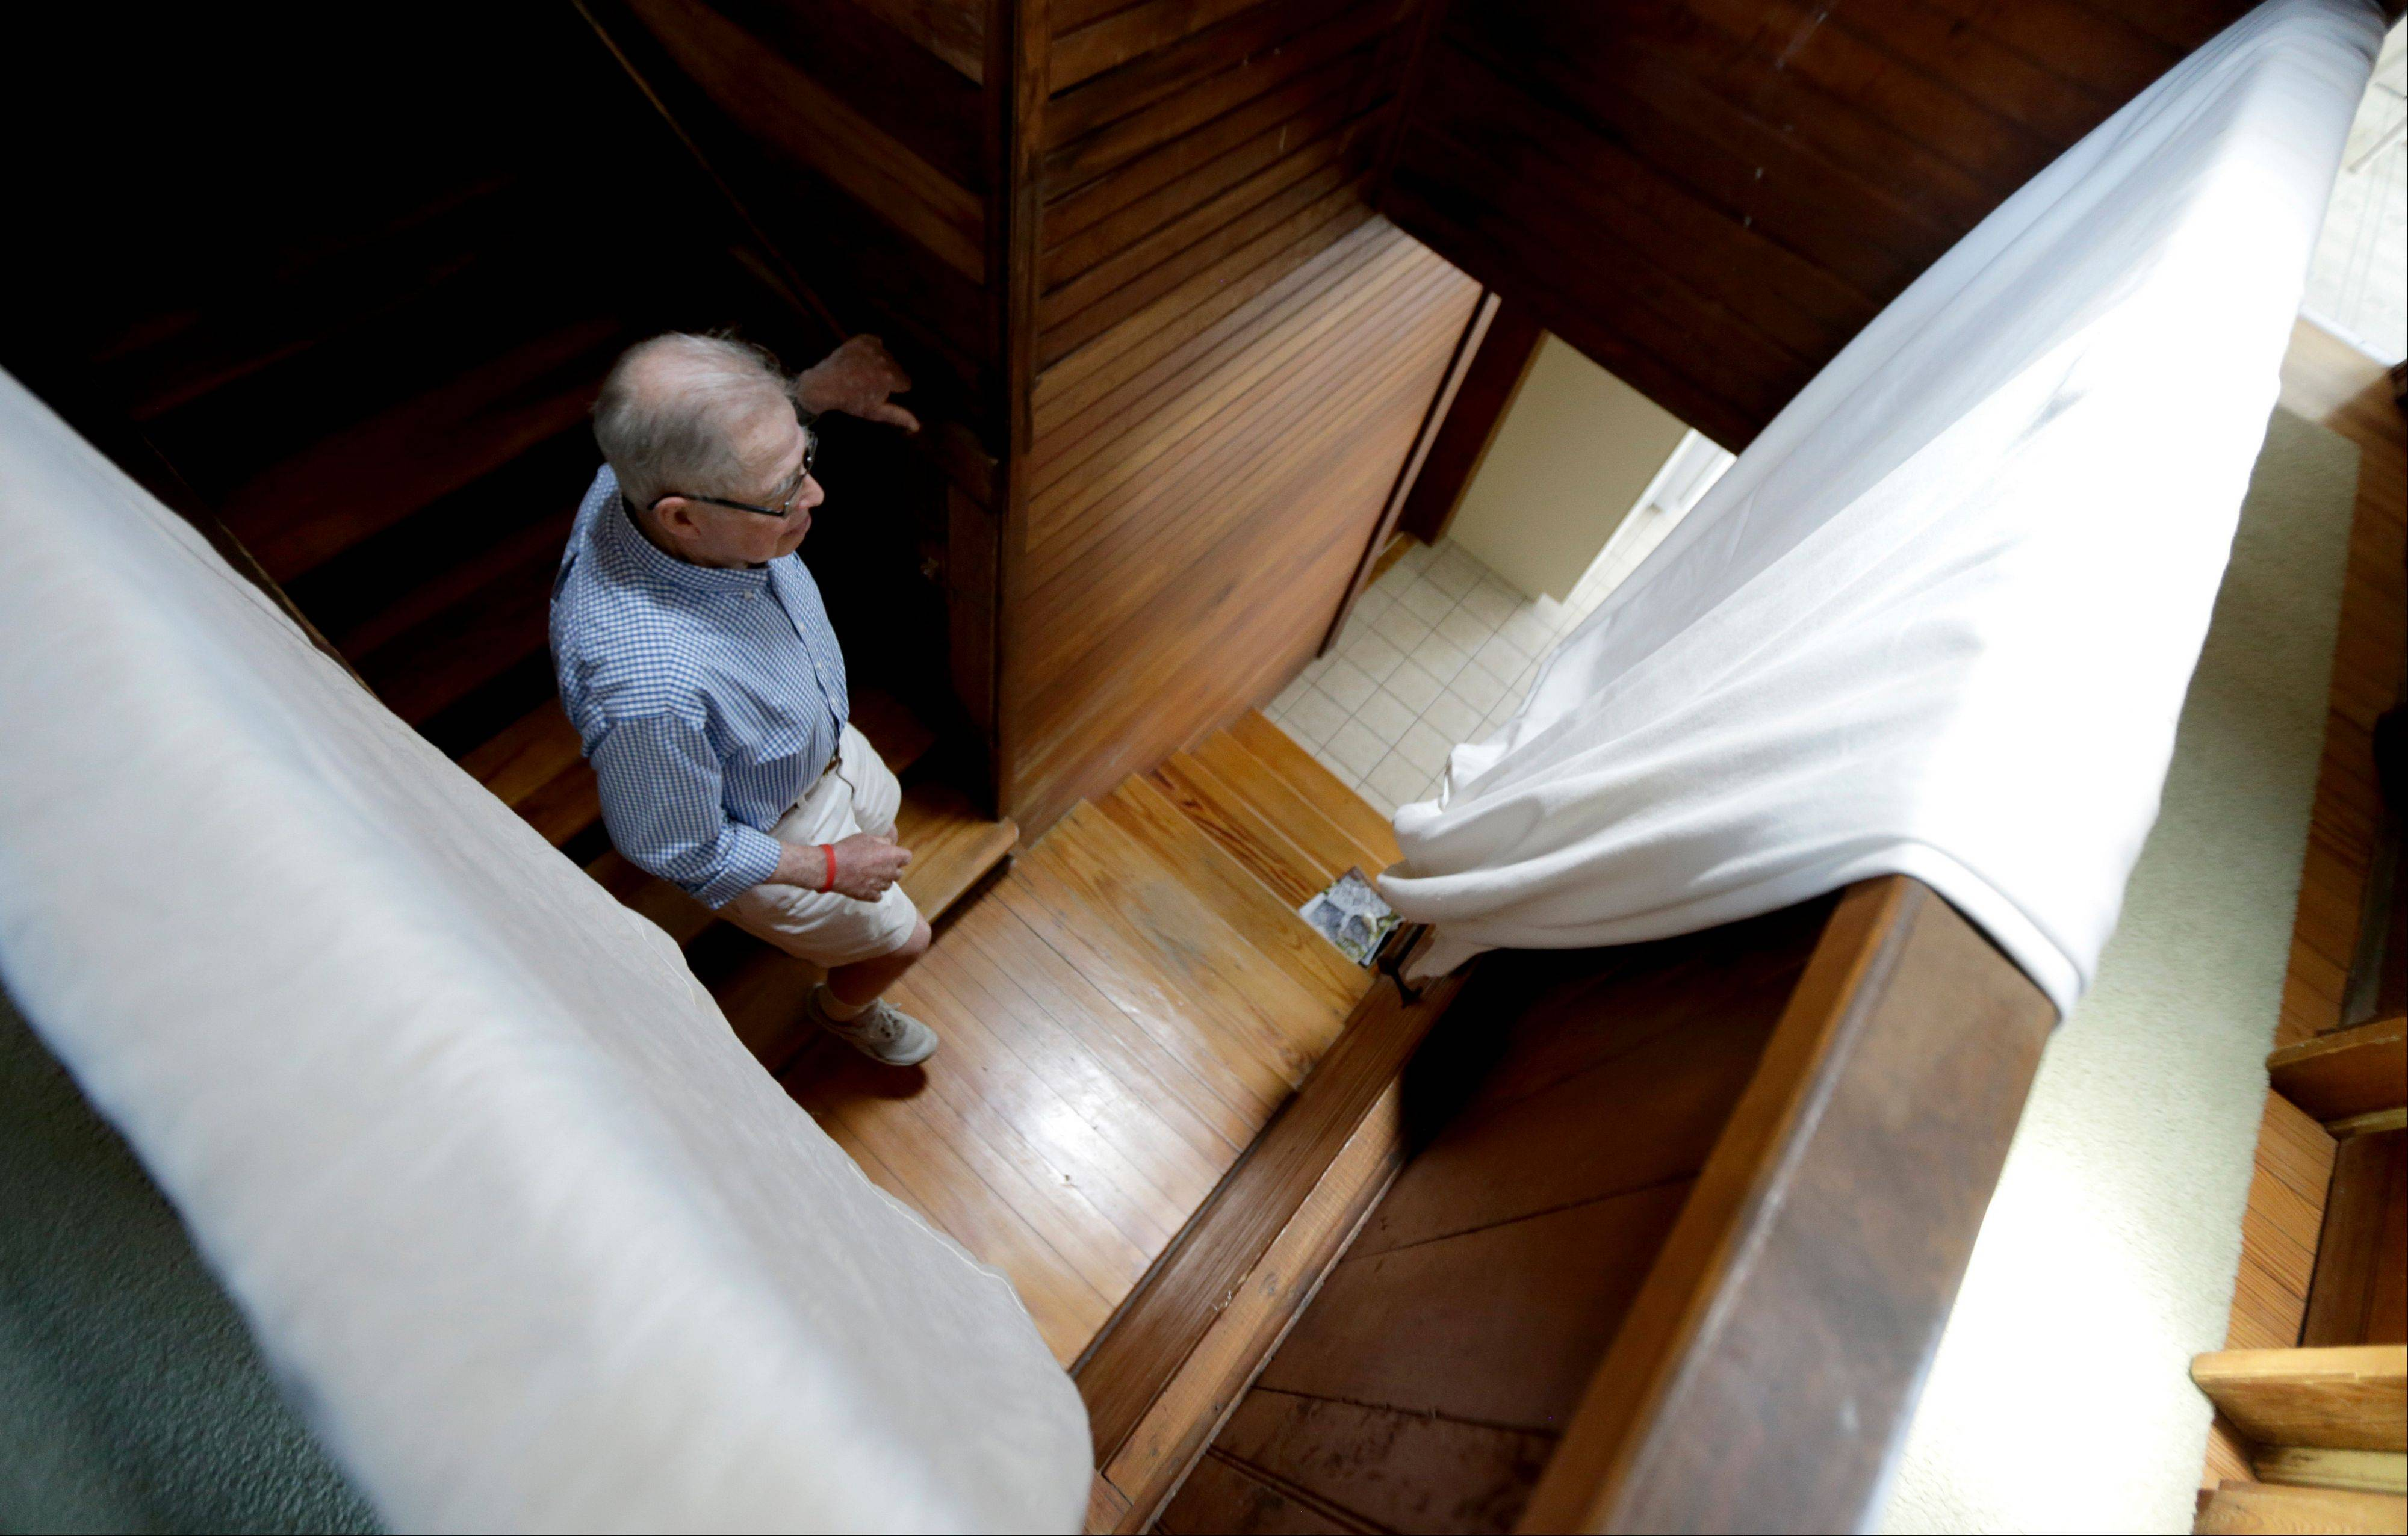 Robert Post, 85, walks down the stairs in his home, in Mantoloking, N.J., which was flooded during Superstorm Sandy last year. Post has a pacemaker that needs to be checked once a month by phone, but the phone company refuses to restore the area�s landlines after they were damaged by the storm because it says phone lines are outdated.